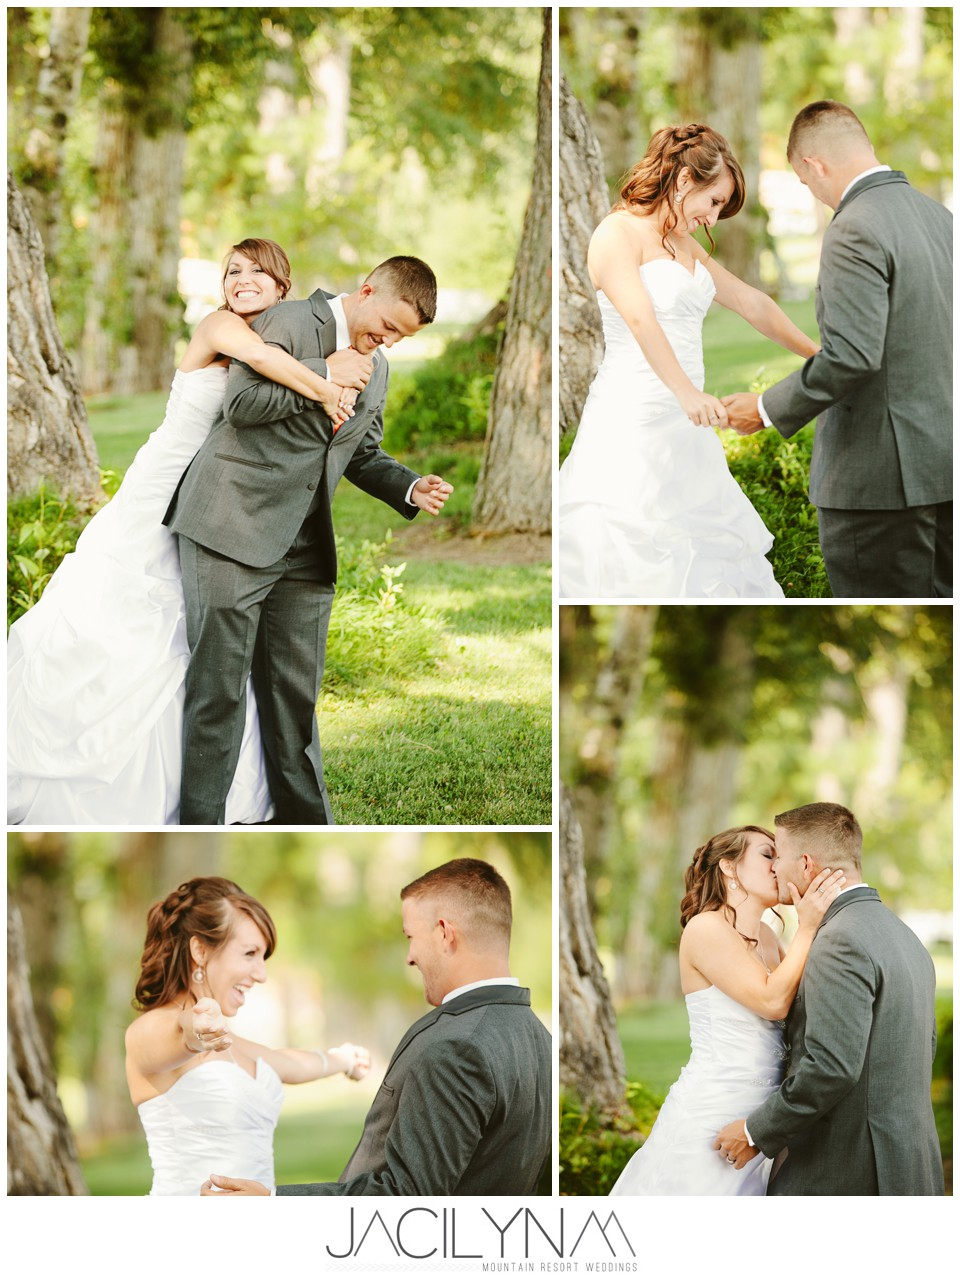 Especial To Do Or Not To Montana Wedding Photographer Jacilyn Mphotography Blog To Do Or Not To Montana Wedding Photographer Look Wedding Songs Look Wedding wedding First Look Wedding